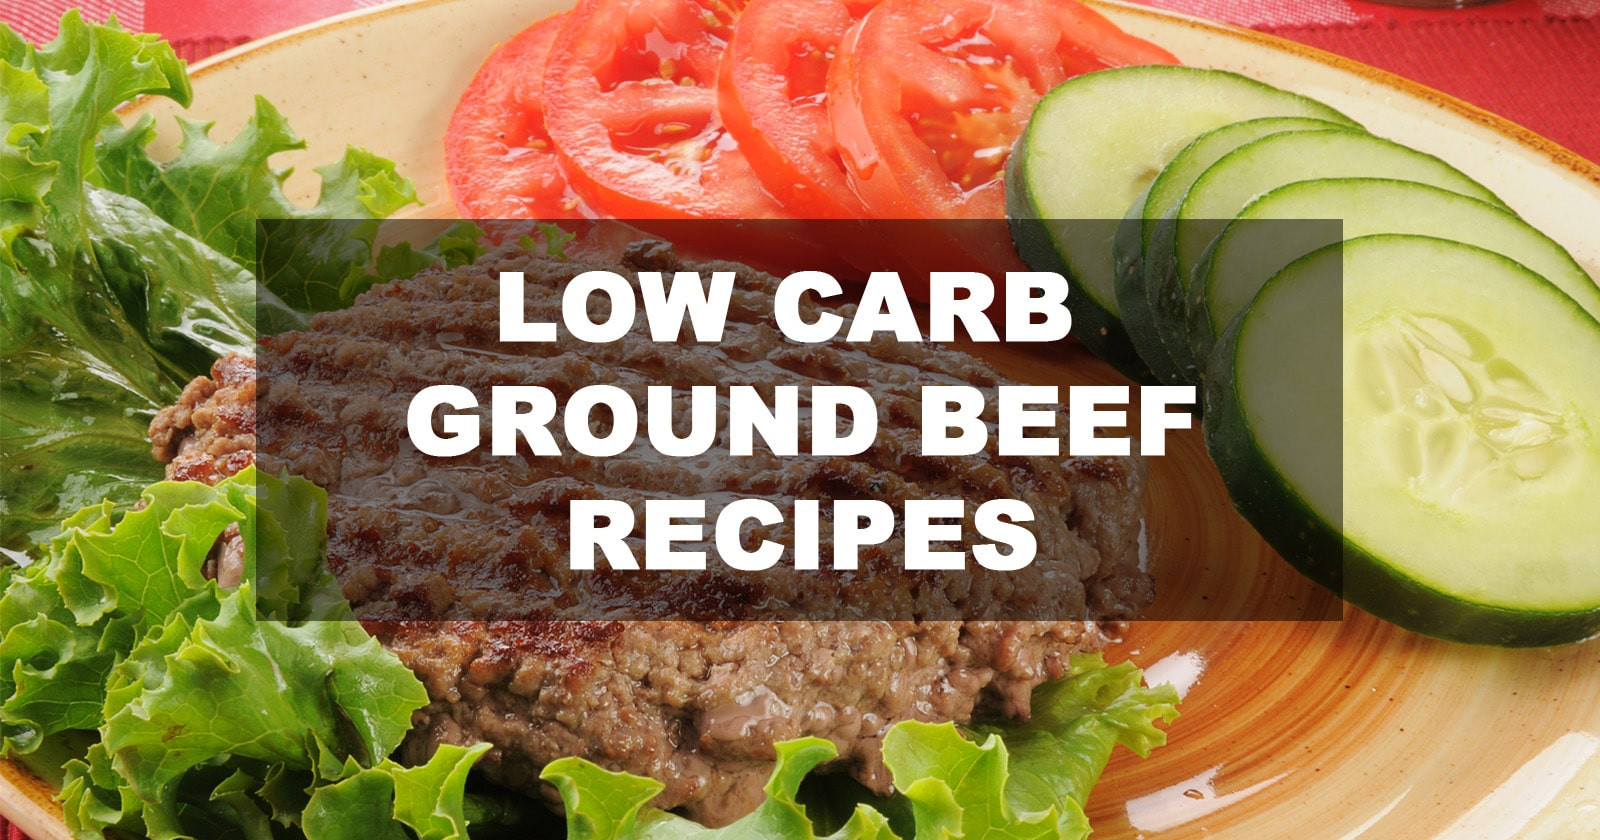 Low Carb Ground Beef Recipes  Keto Diet Recipes With Ground Beef